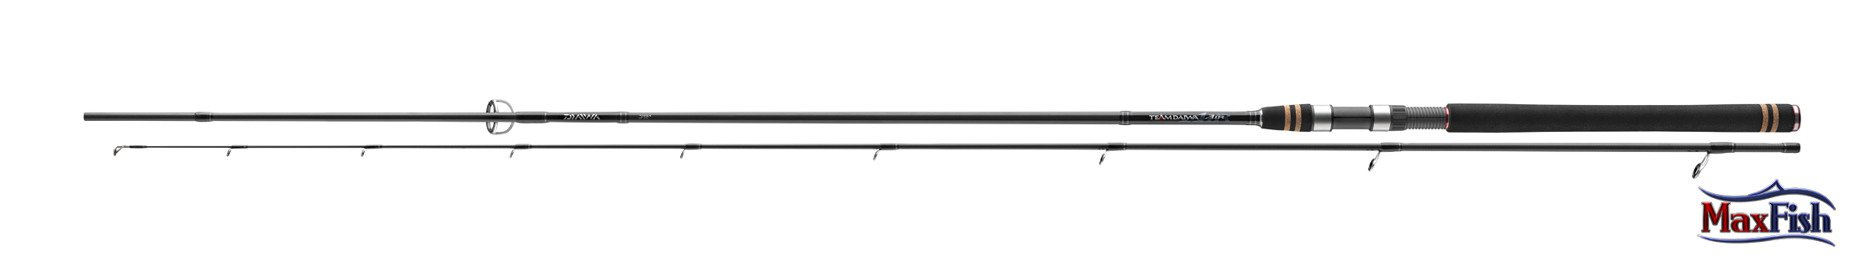 Daiwa Team Daiwa Air Sea Trout 285cm 7-28g